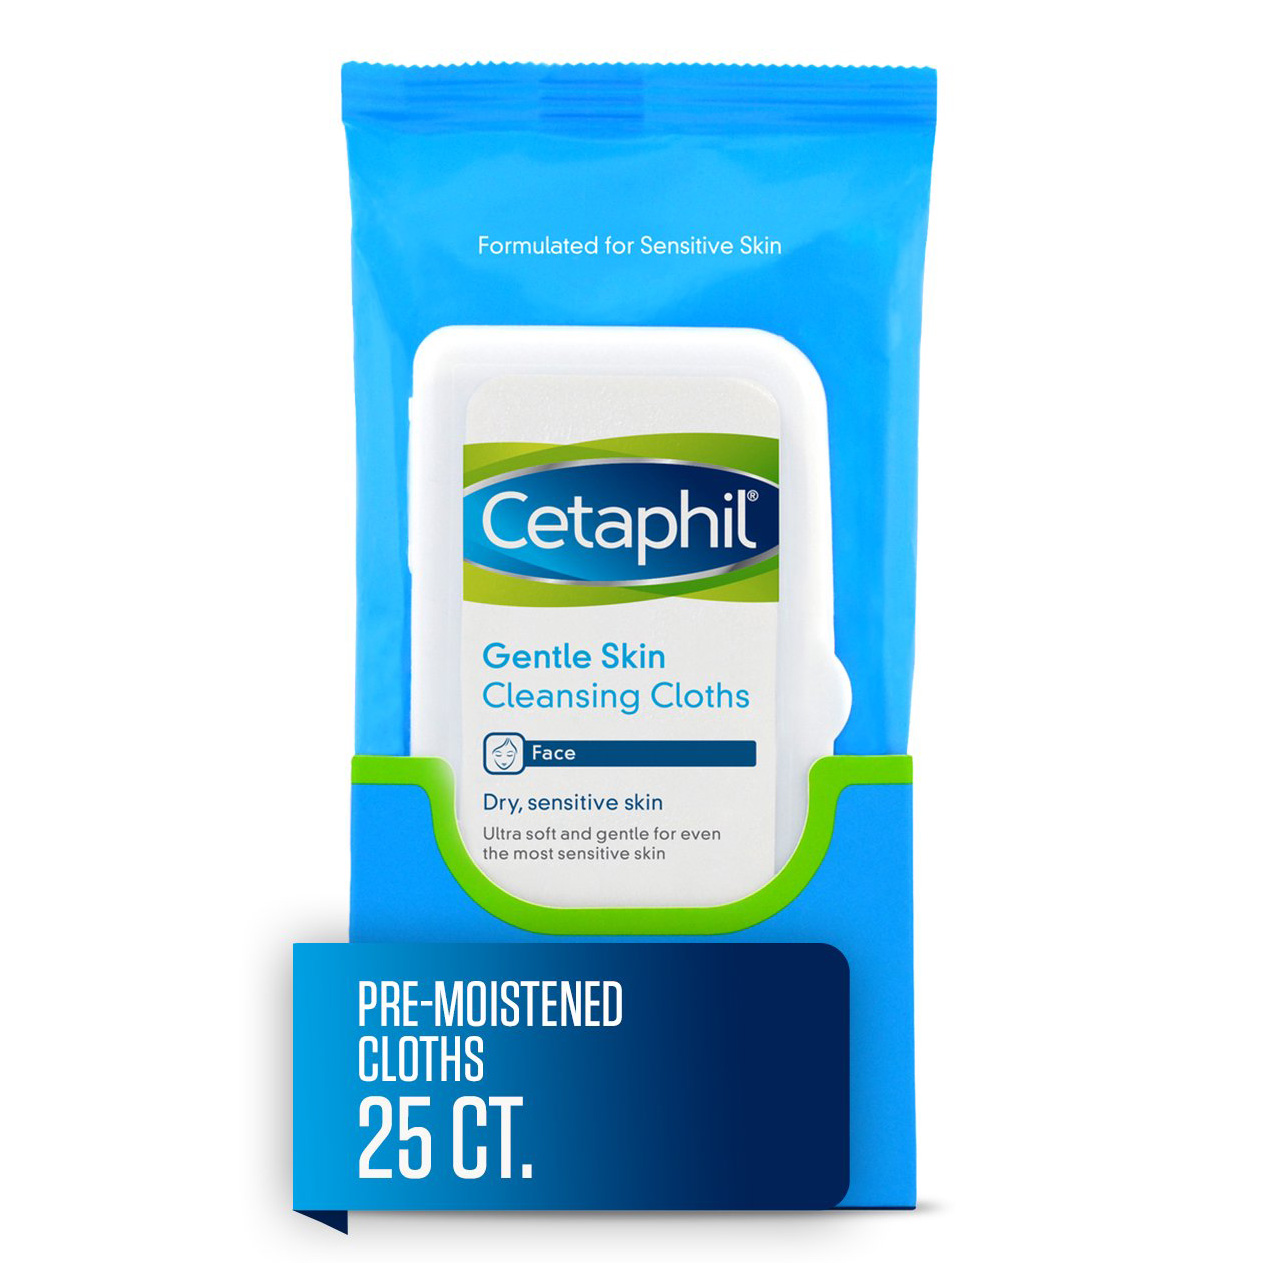 Cetaphil Gentle Skin Cleansing Cloths, Face Wipes for Dry/Sensitive Skin